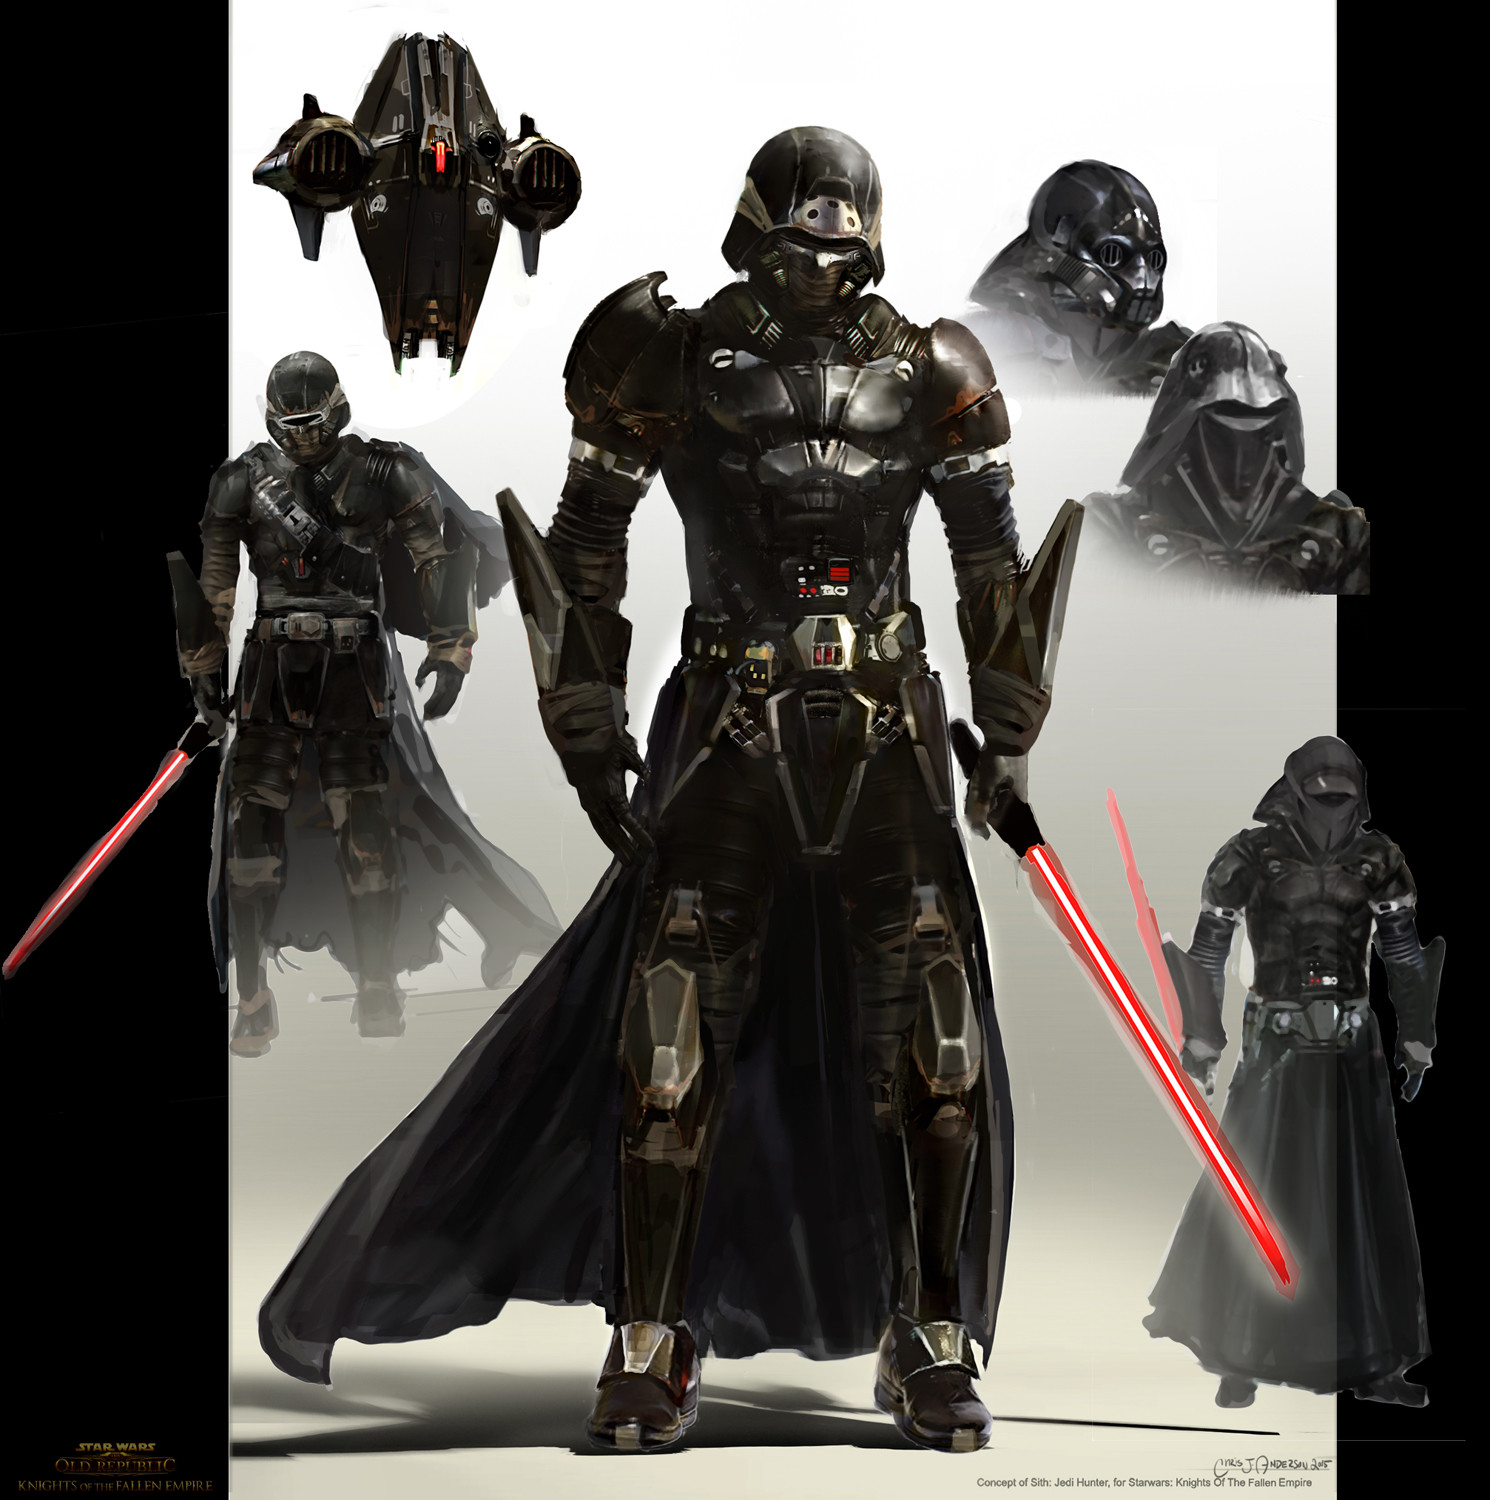 chris-anderson-010a-sith-recluse.jpg?149